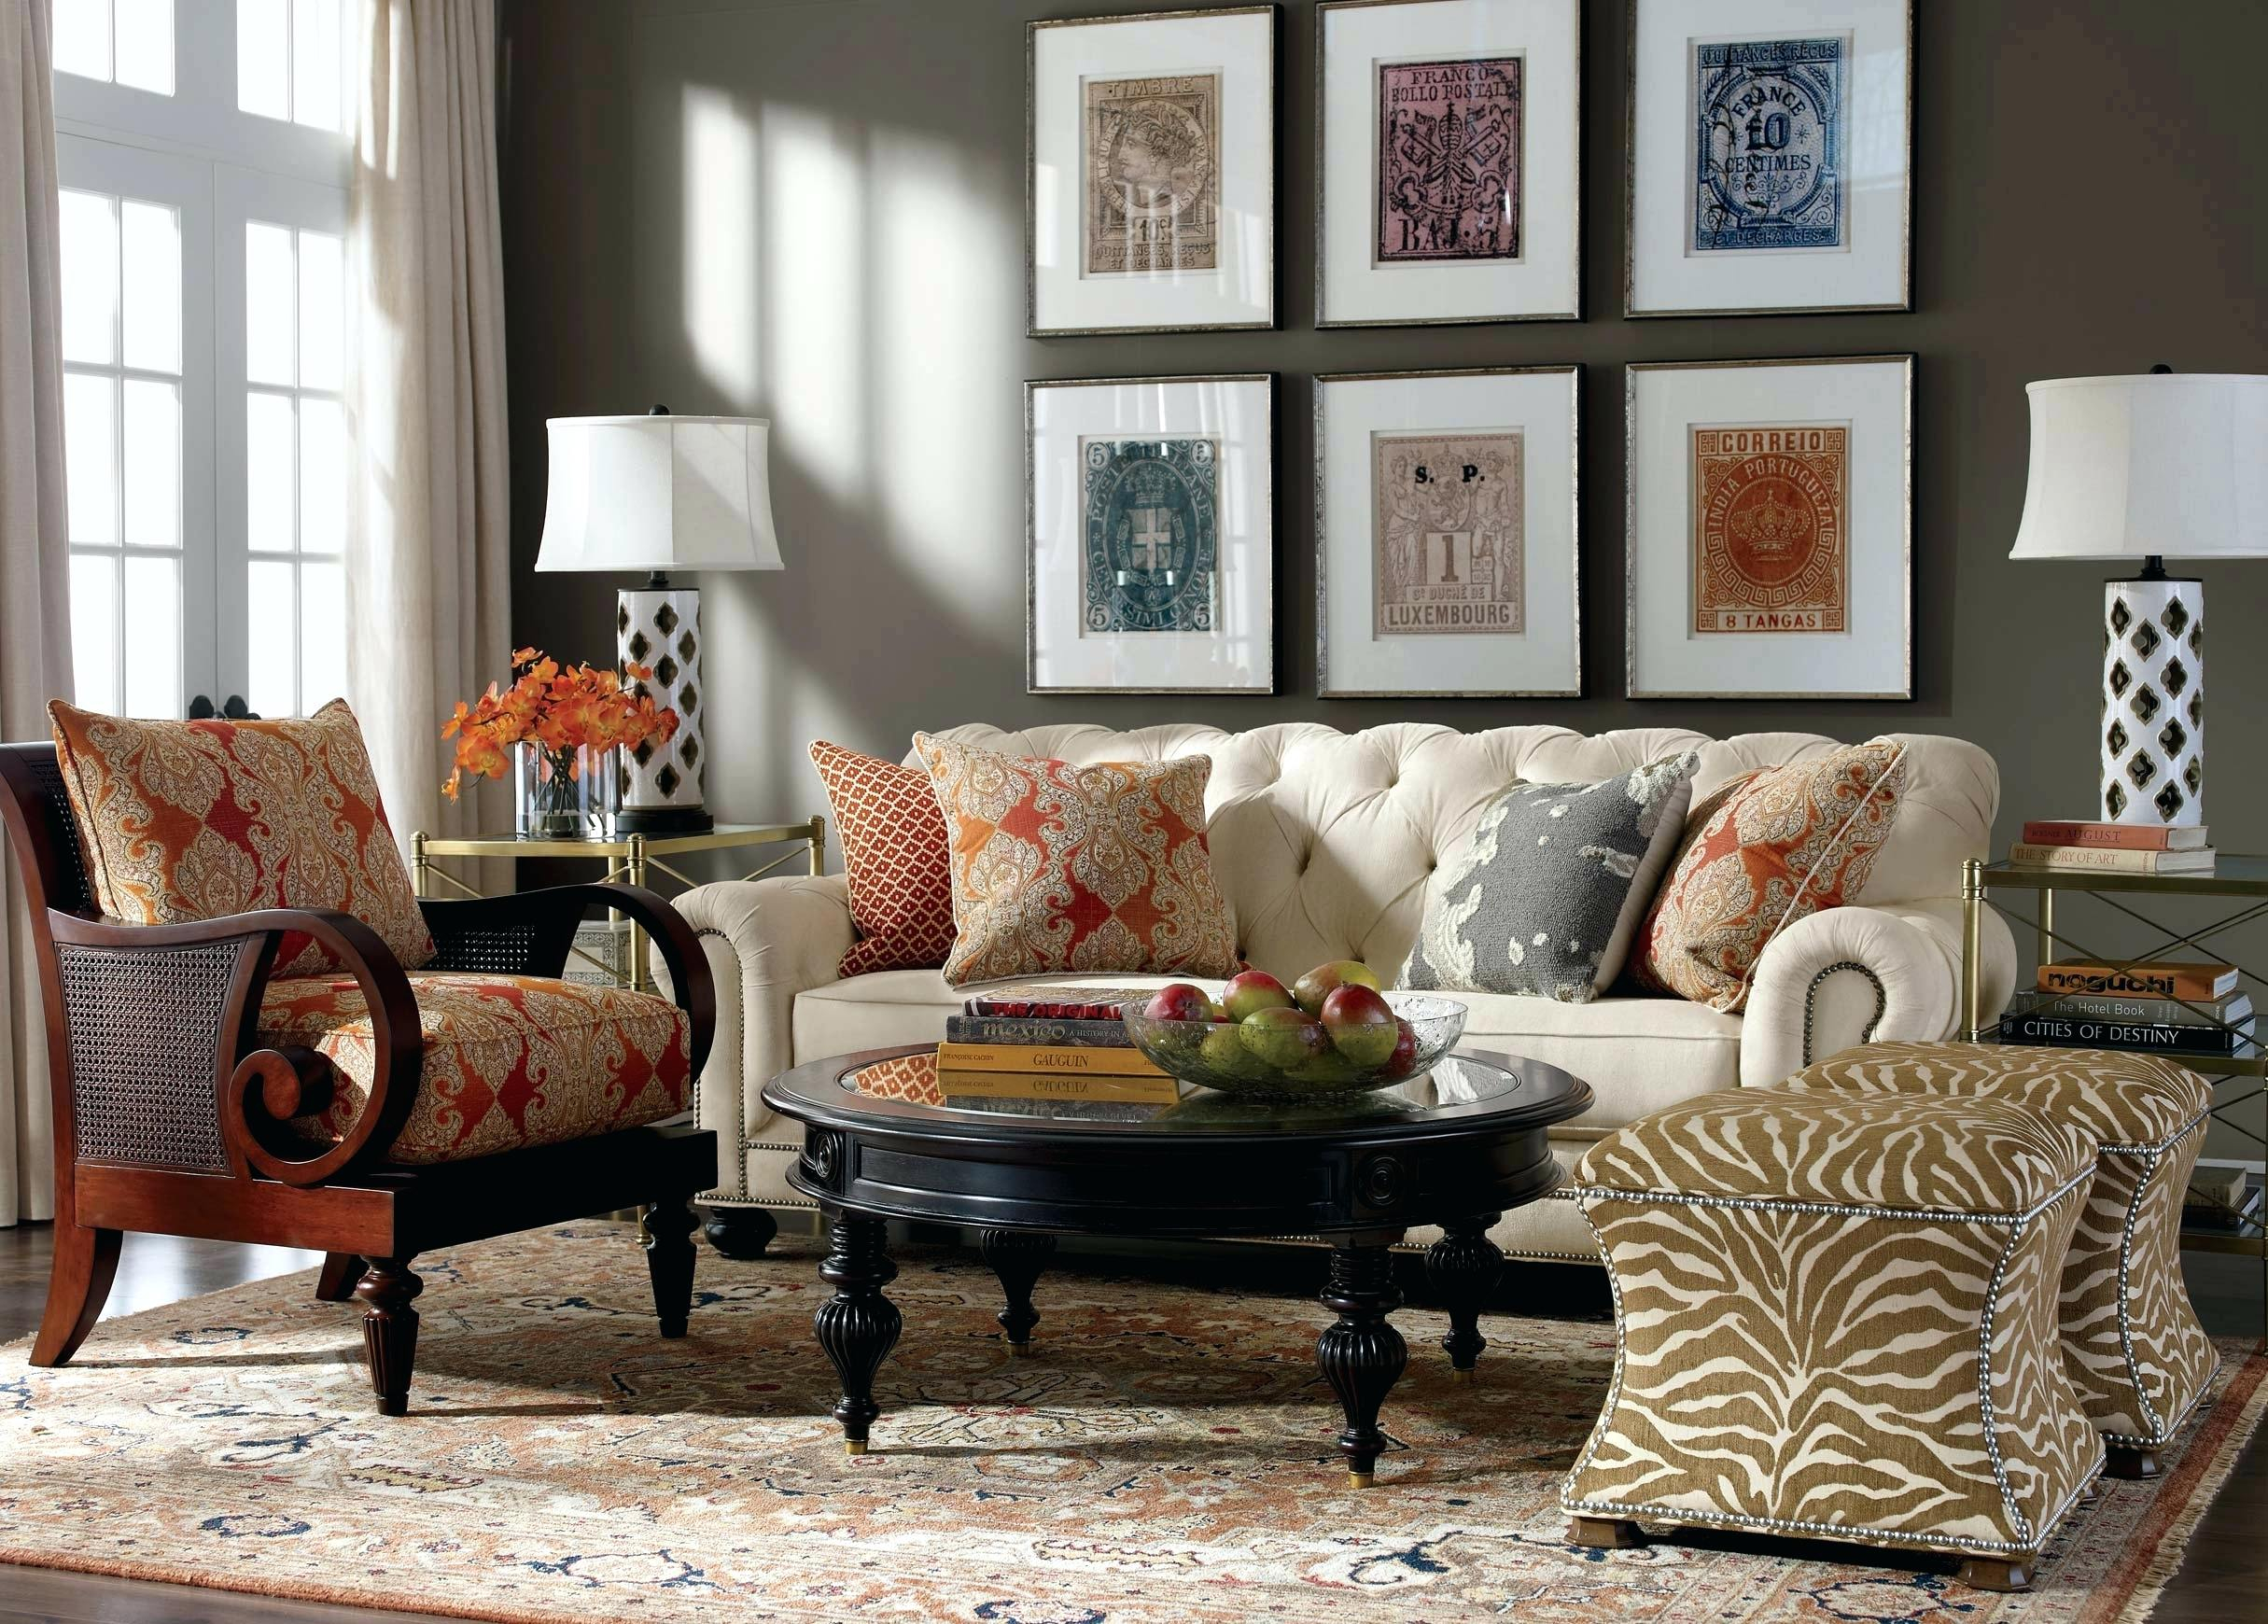 Glamorous Ethan Allen Living Room For Kitchen Designs Citytimezones Info Ethan in Set Ethan Allen Living Room